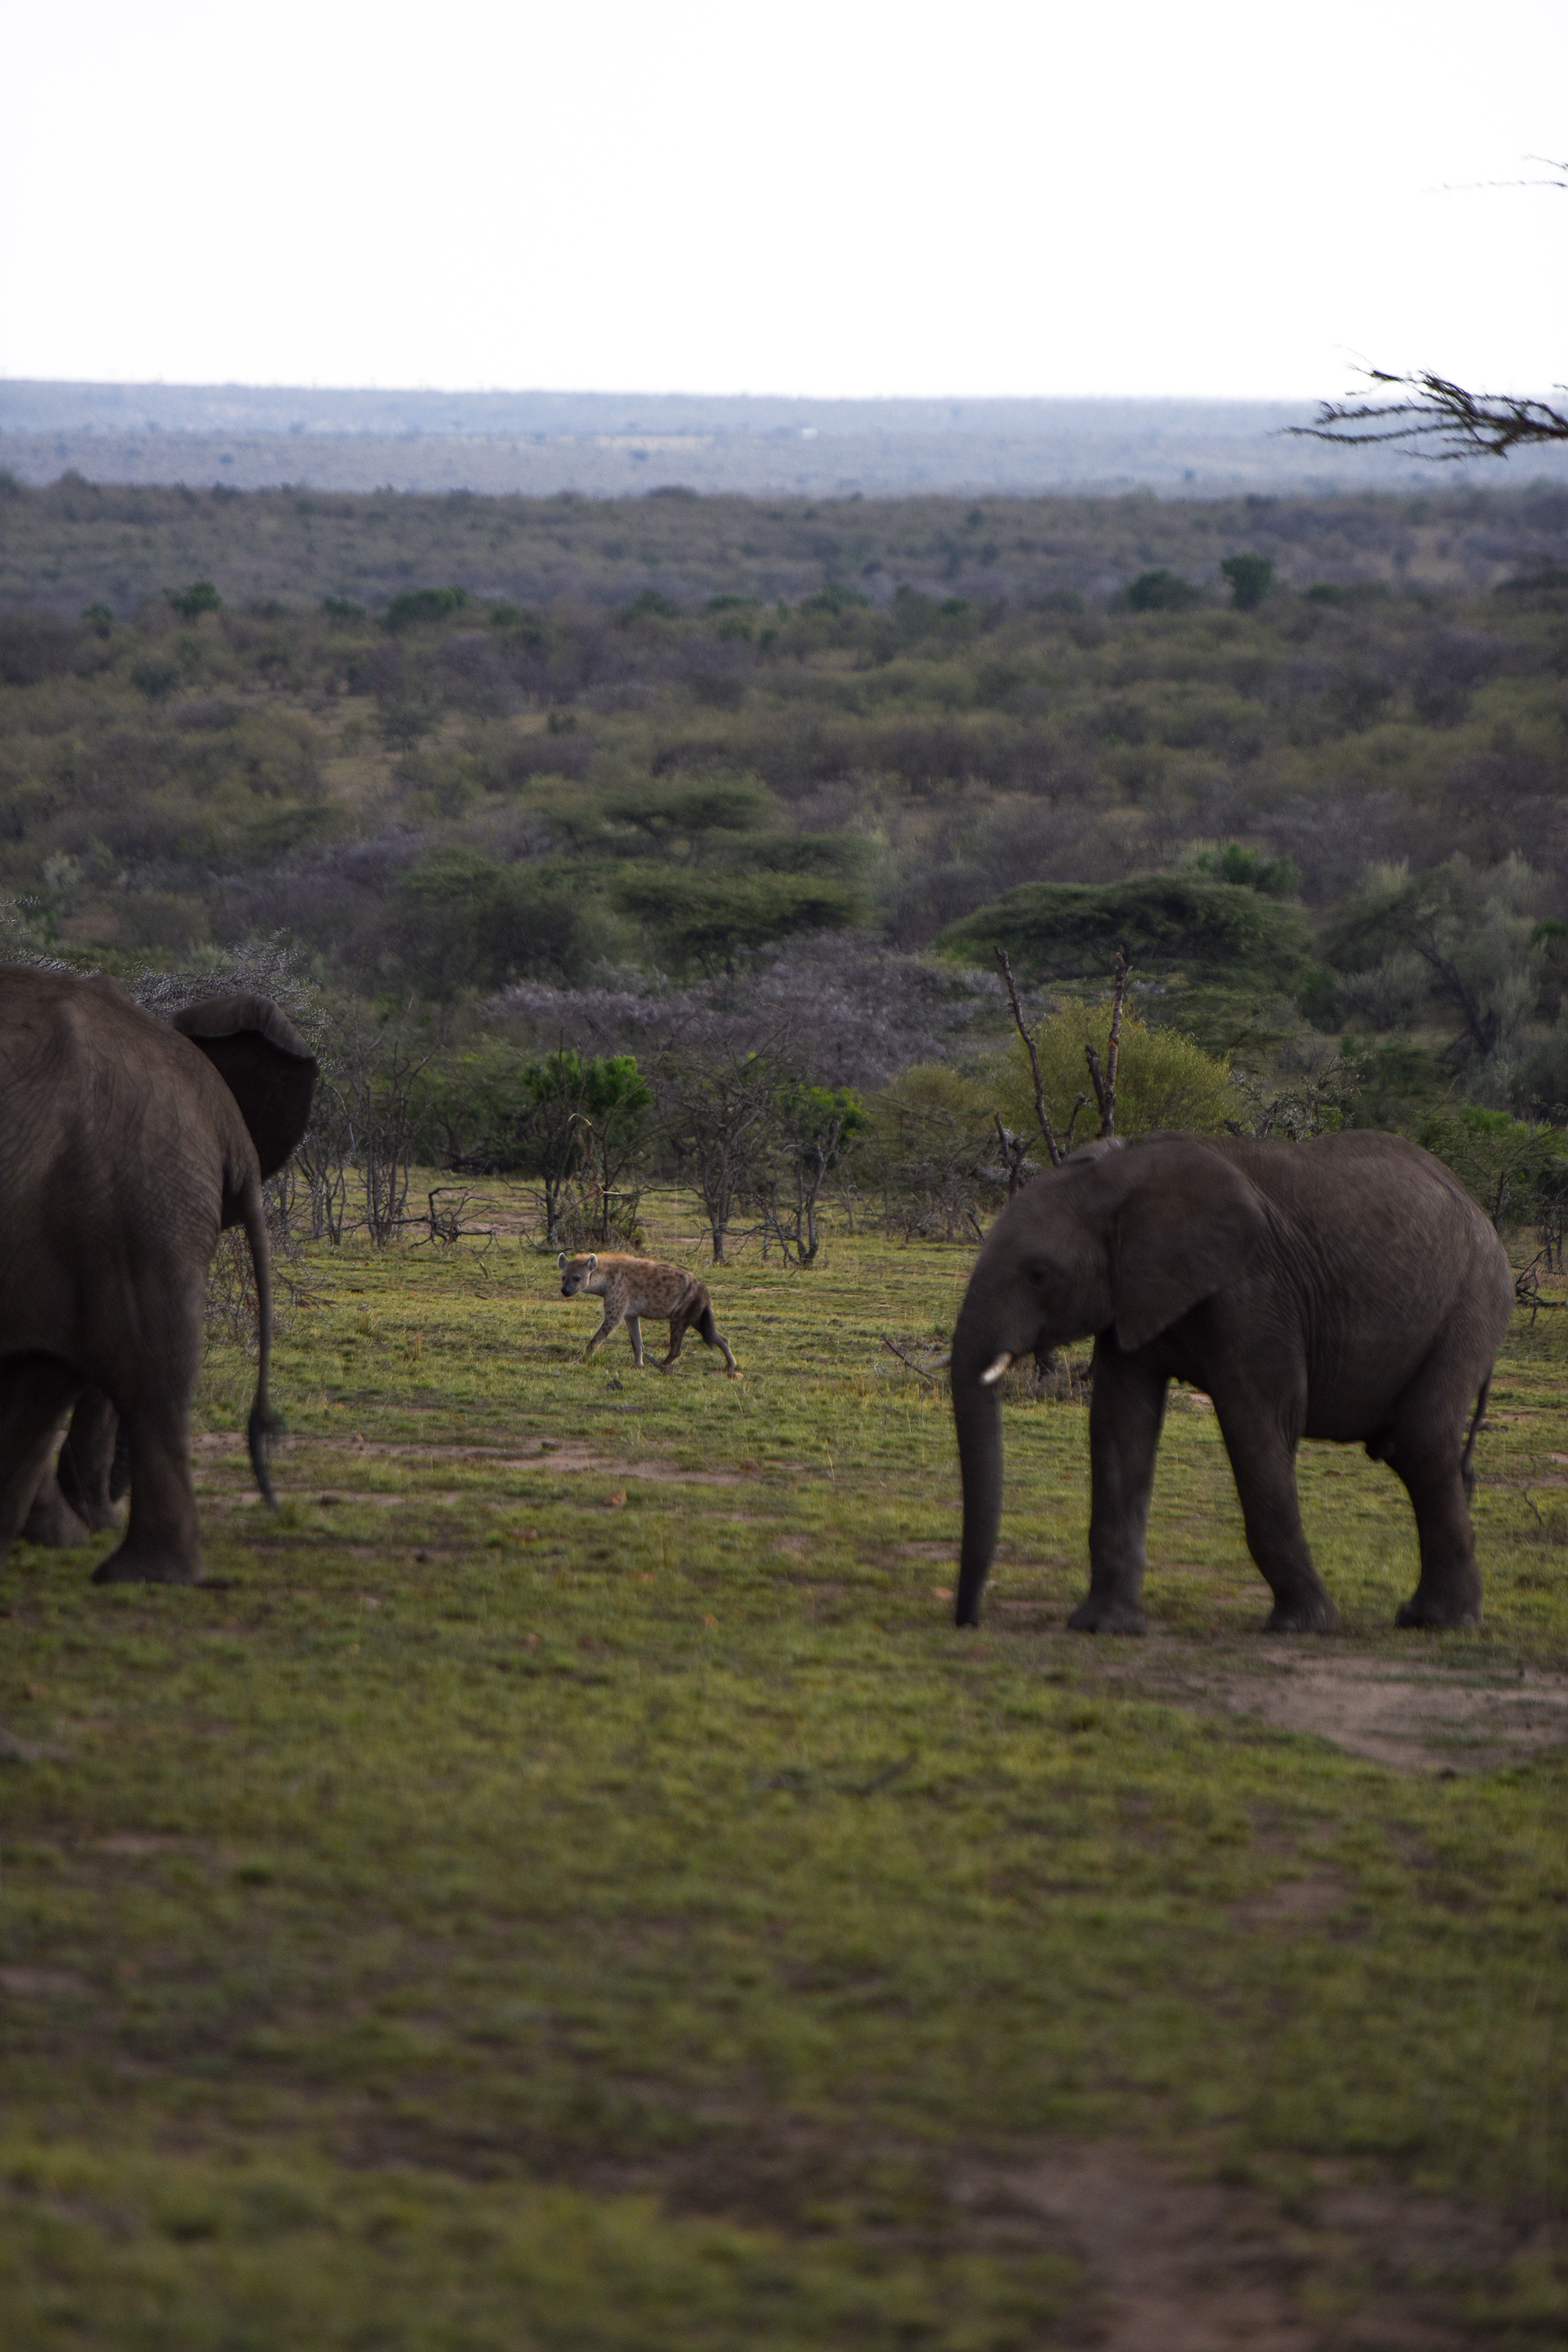 A spotted hyenda stalks a herd of elephants in Nashulai Conservancy.